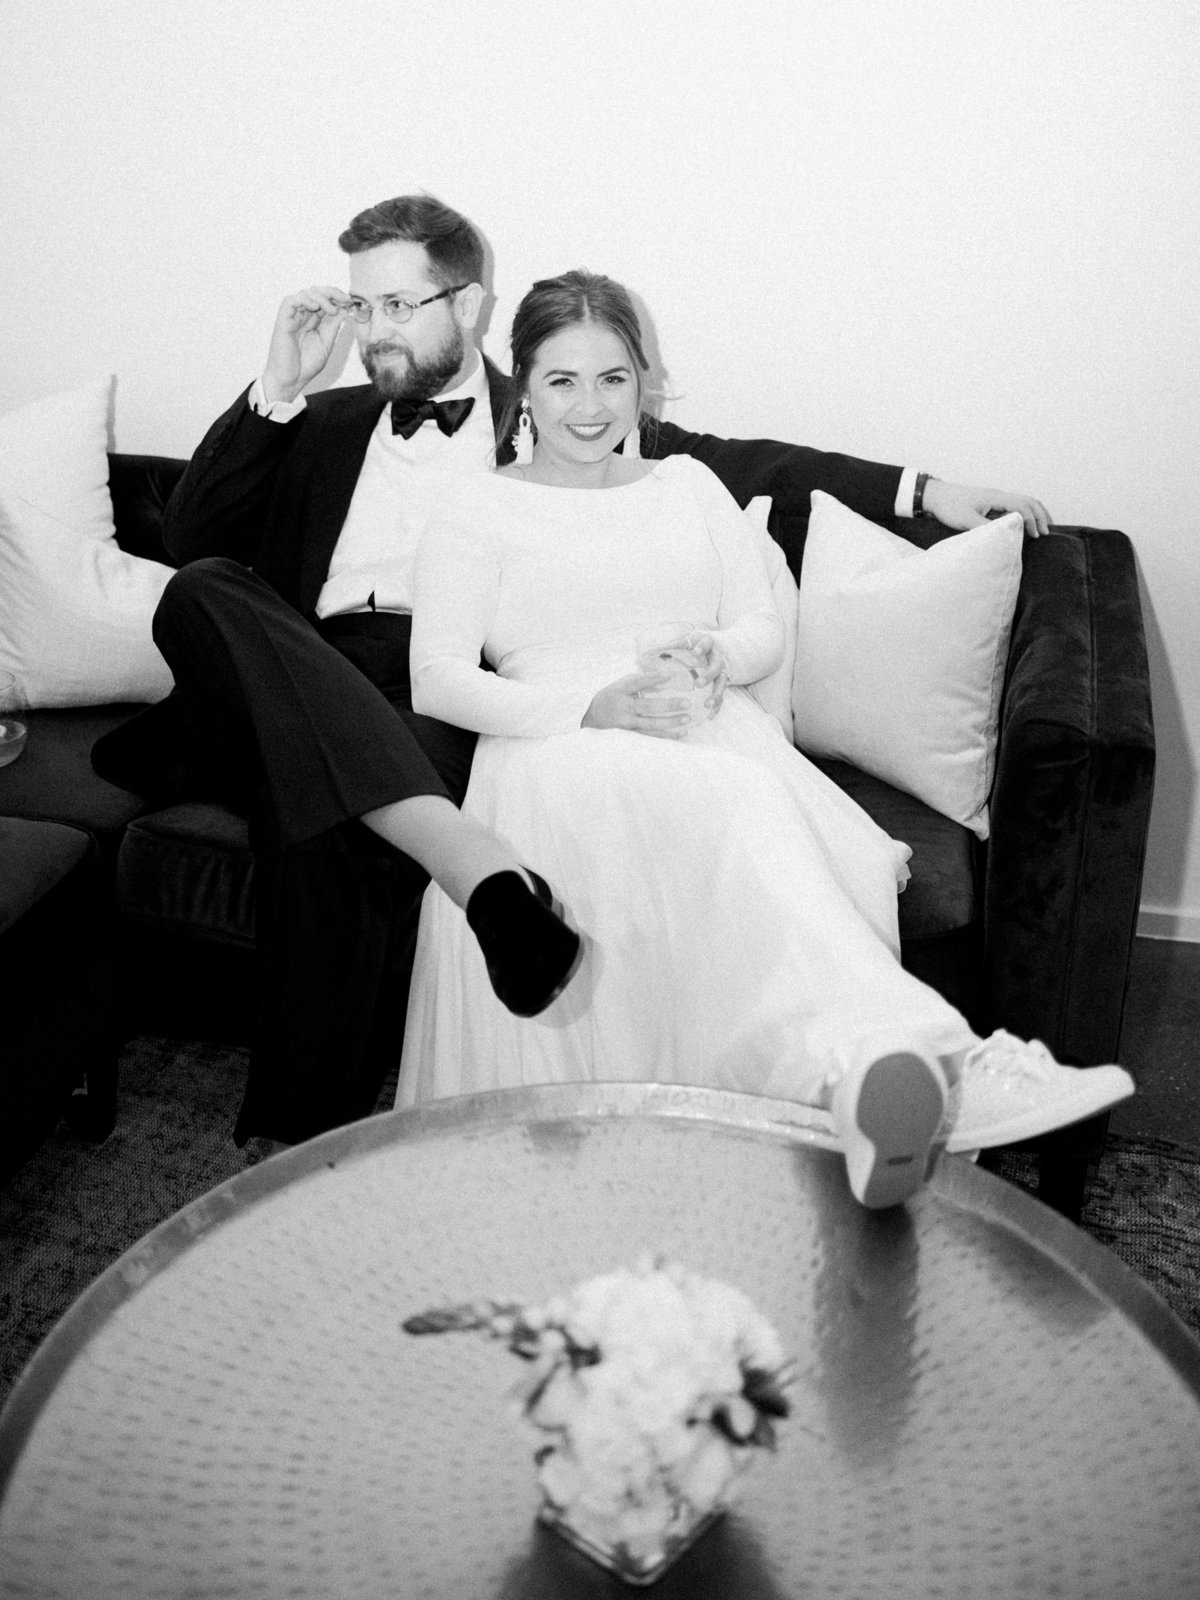 Courtney Hanson Photography - Festive Holiday Wedding in Dallas at Hickory Street Annex-4326